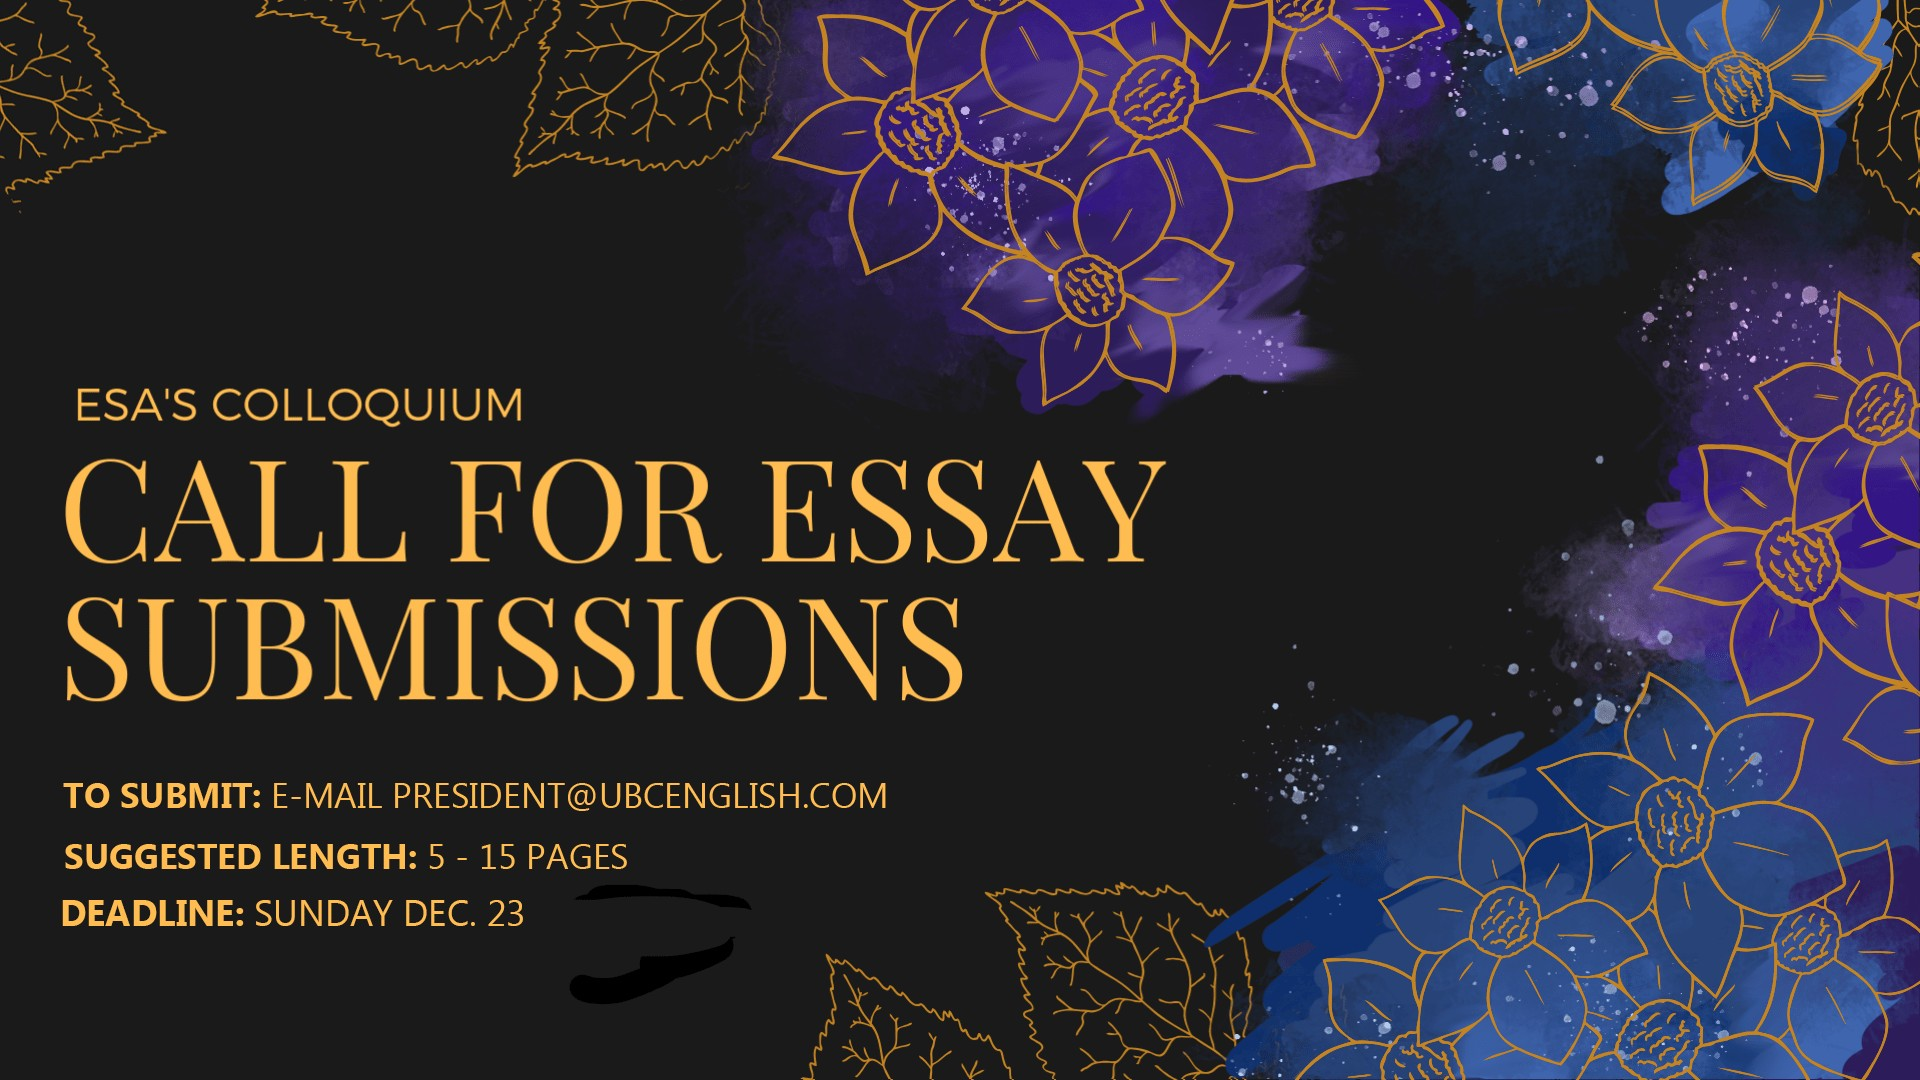 021 Essay Submissions Colloquium Final V3fit19202c1080 Impressive Buzzfeed Personal Press New York Times 1920